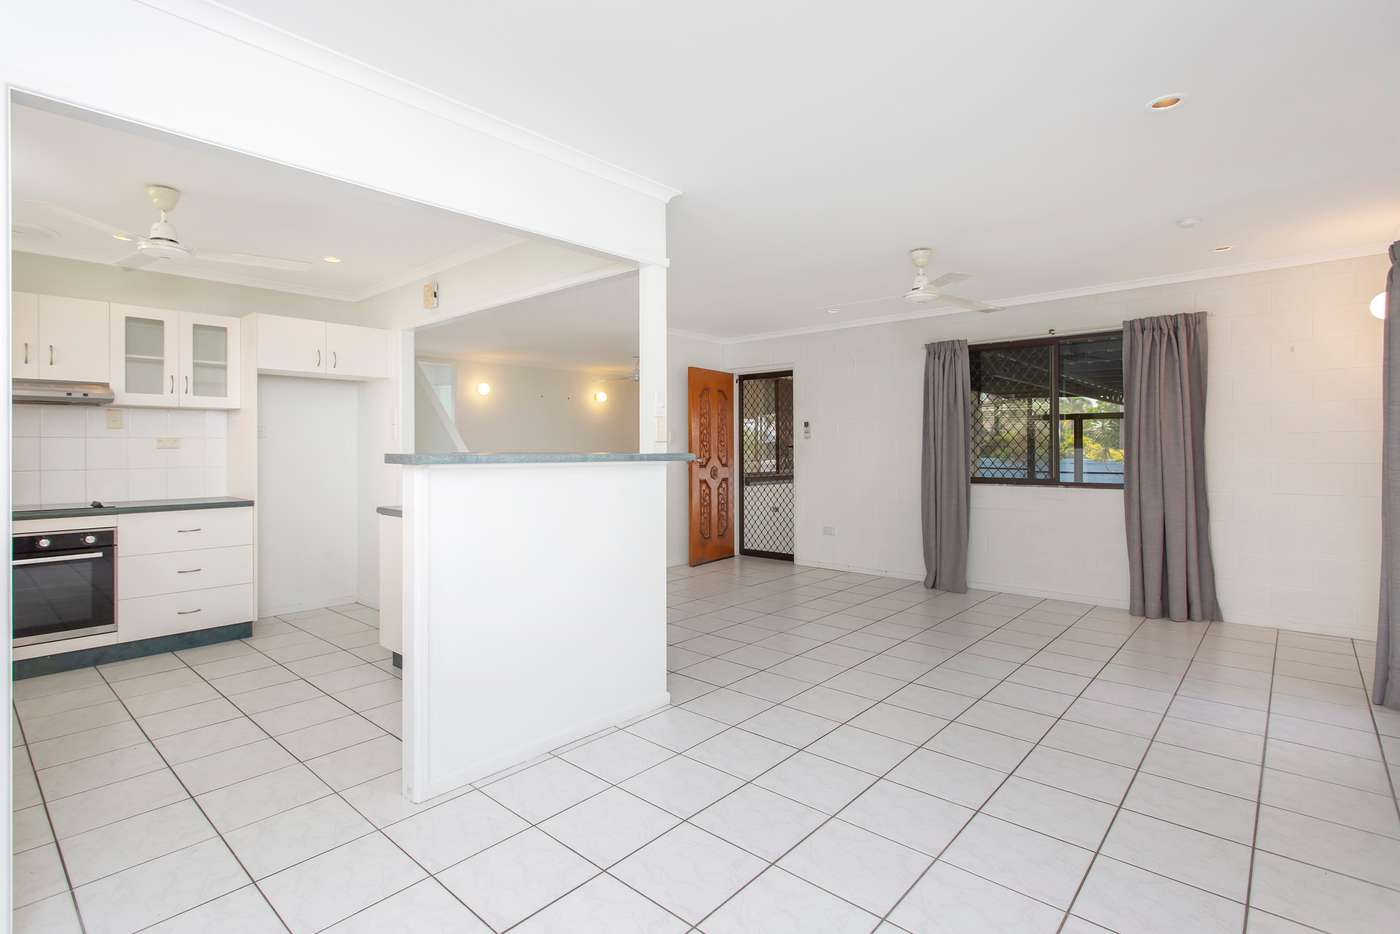 Sixth view of Homely house listing, 14 Allamanda Crescent, Annandale QLD 4814